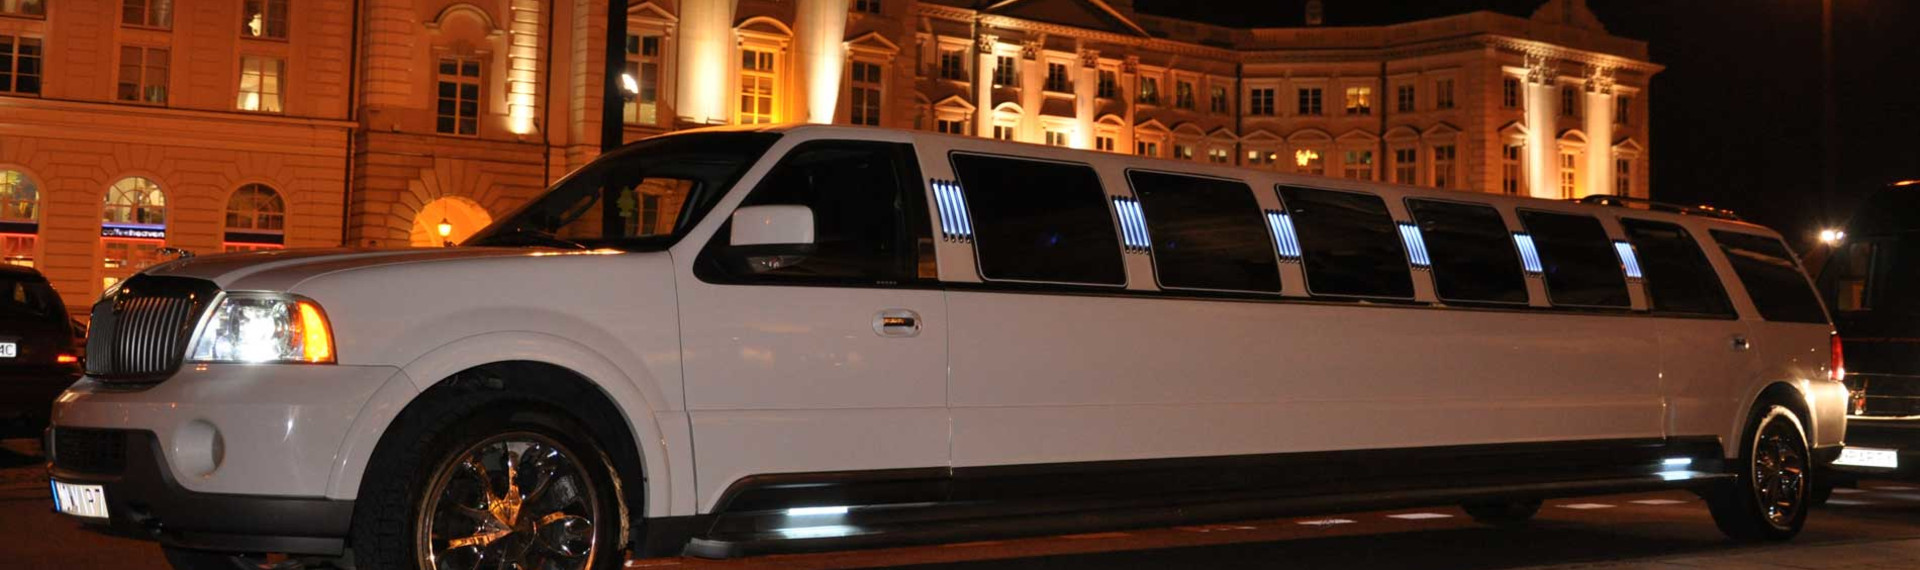 Barcelona Ford Lincoln Limo Transfer image